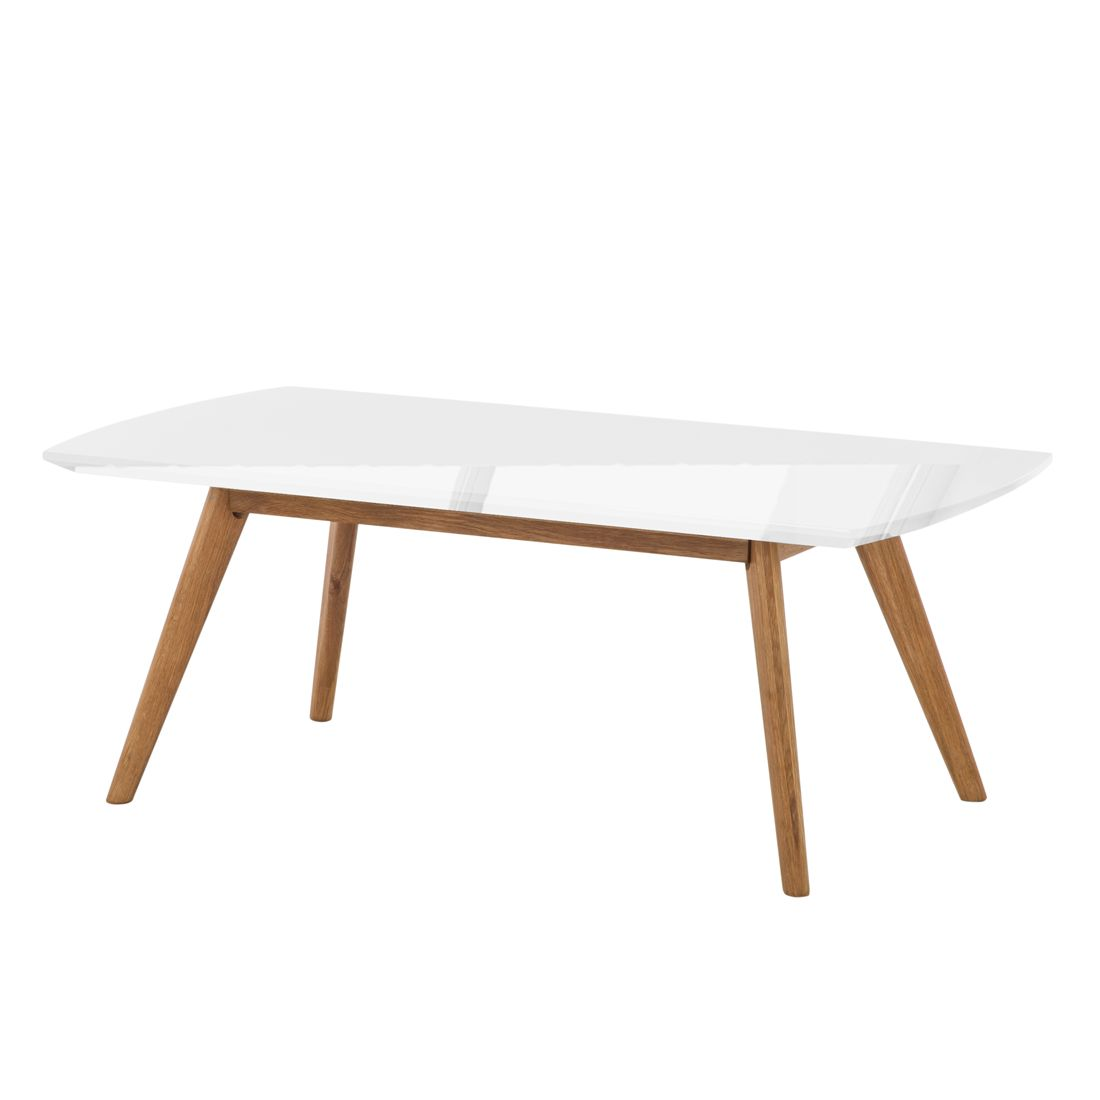 Table basse Lindstroem